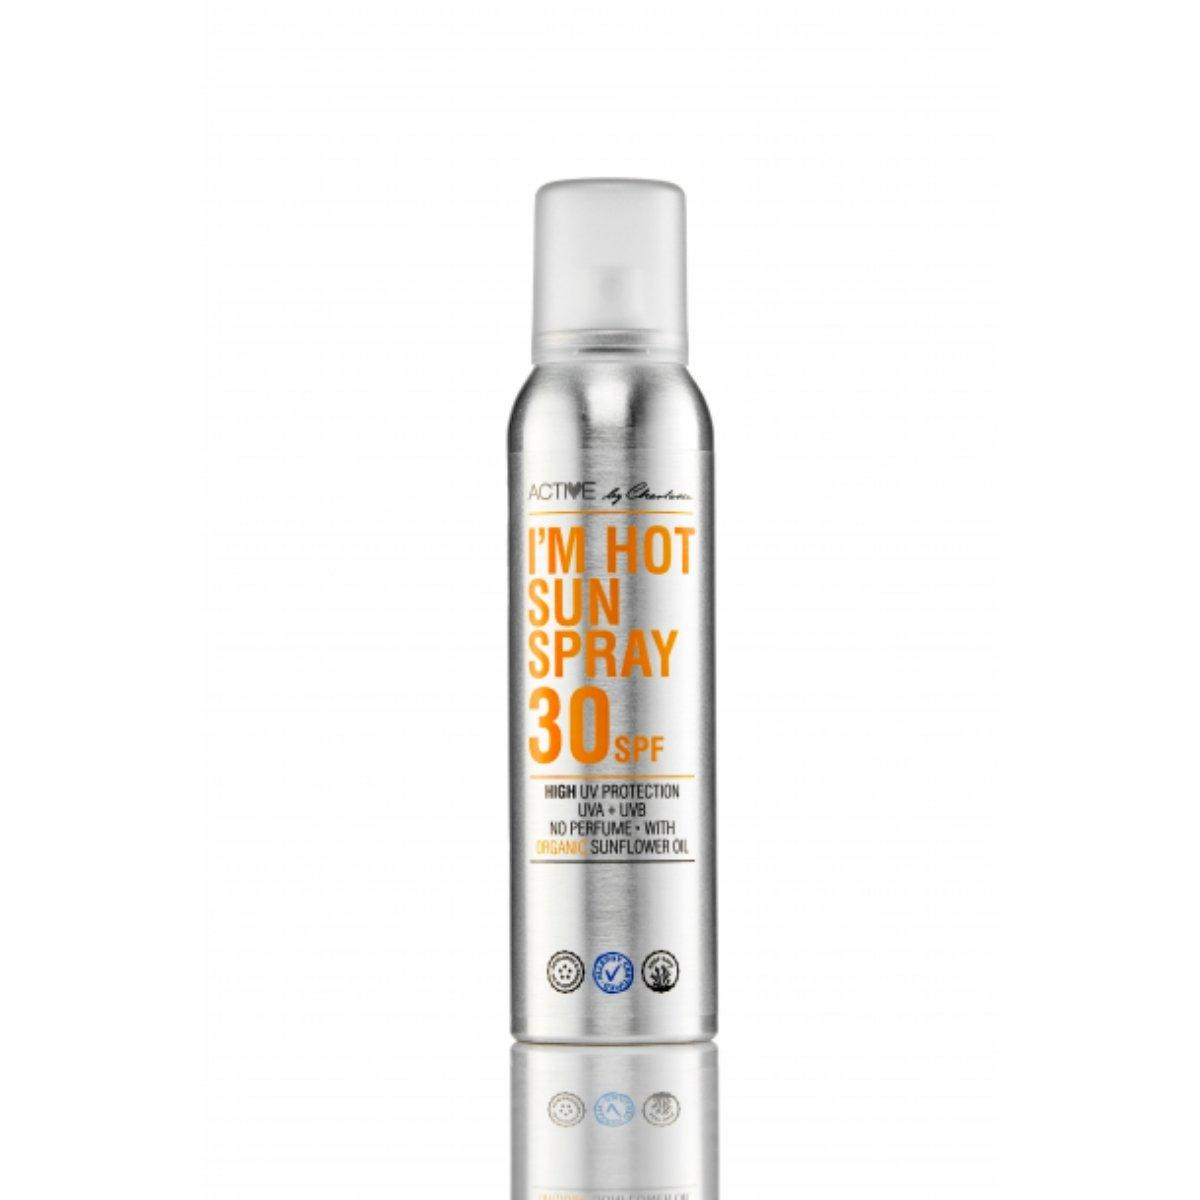 Active By Charlotte I'm Hot Sun Spray 30 SPF - Nulallergi.dk